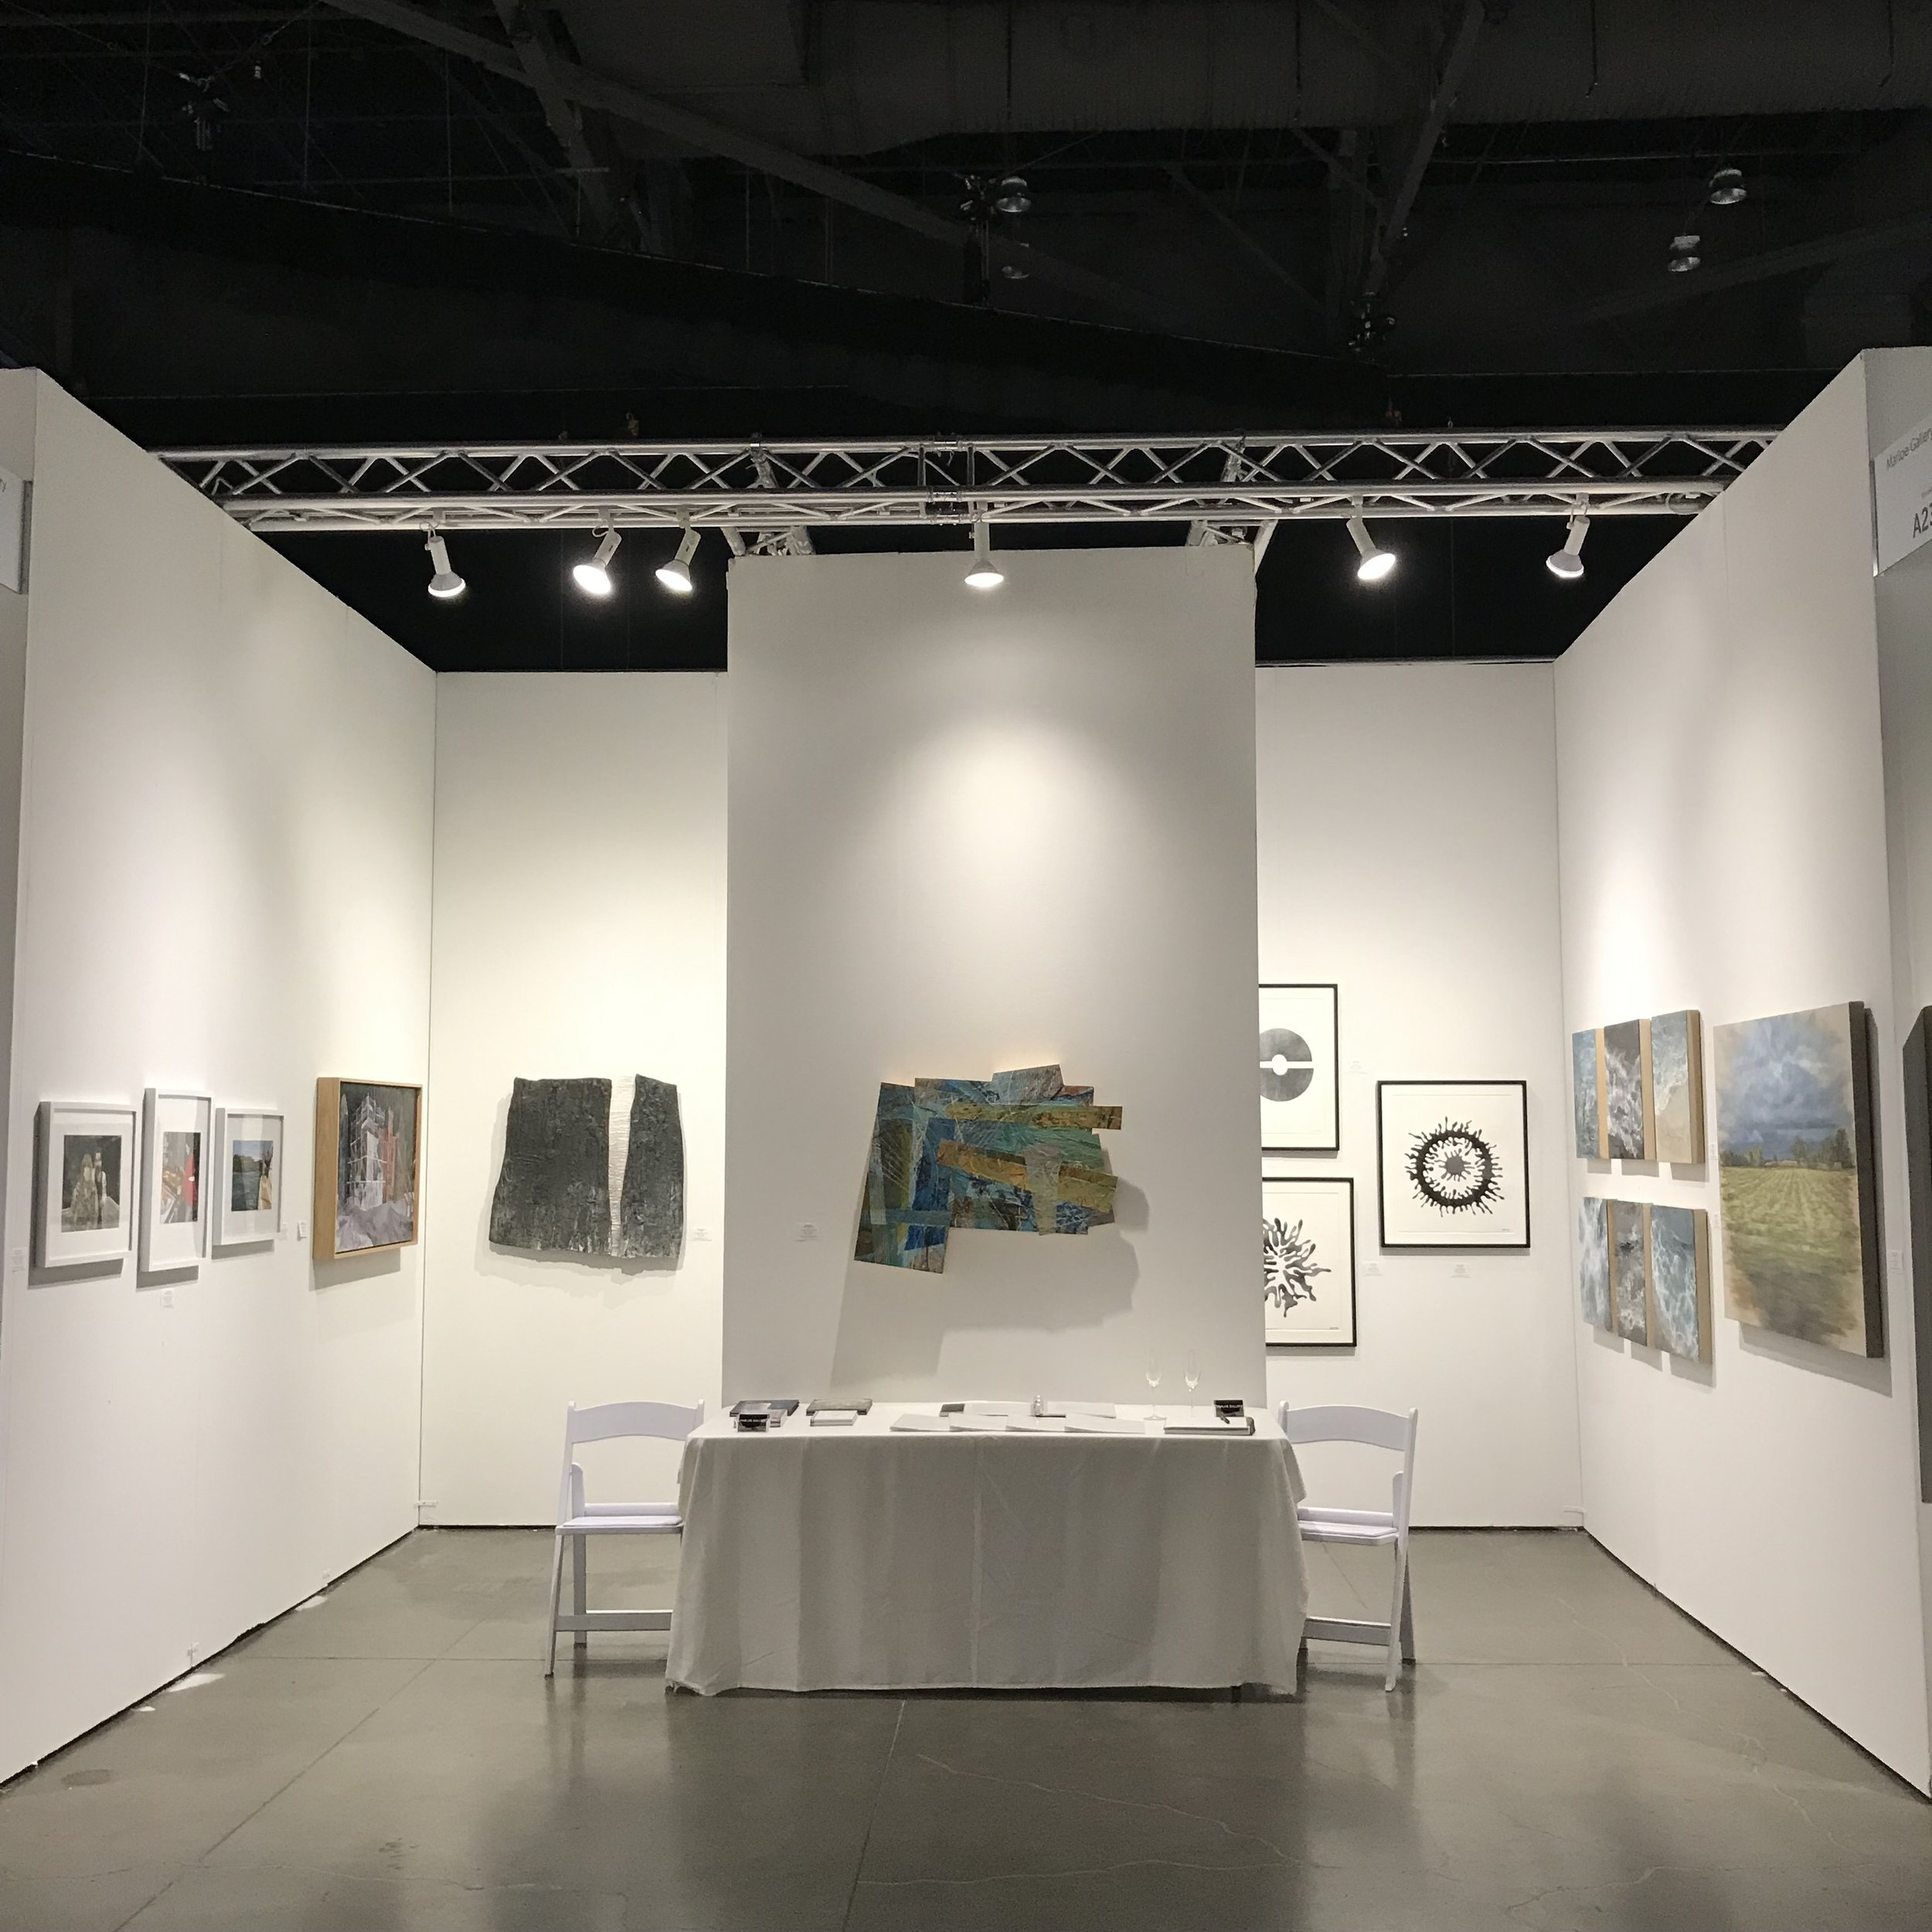 Seattle Art Fair, August 1 - 4, 2019